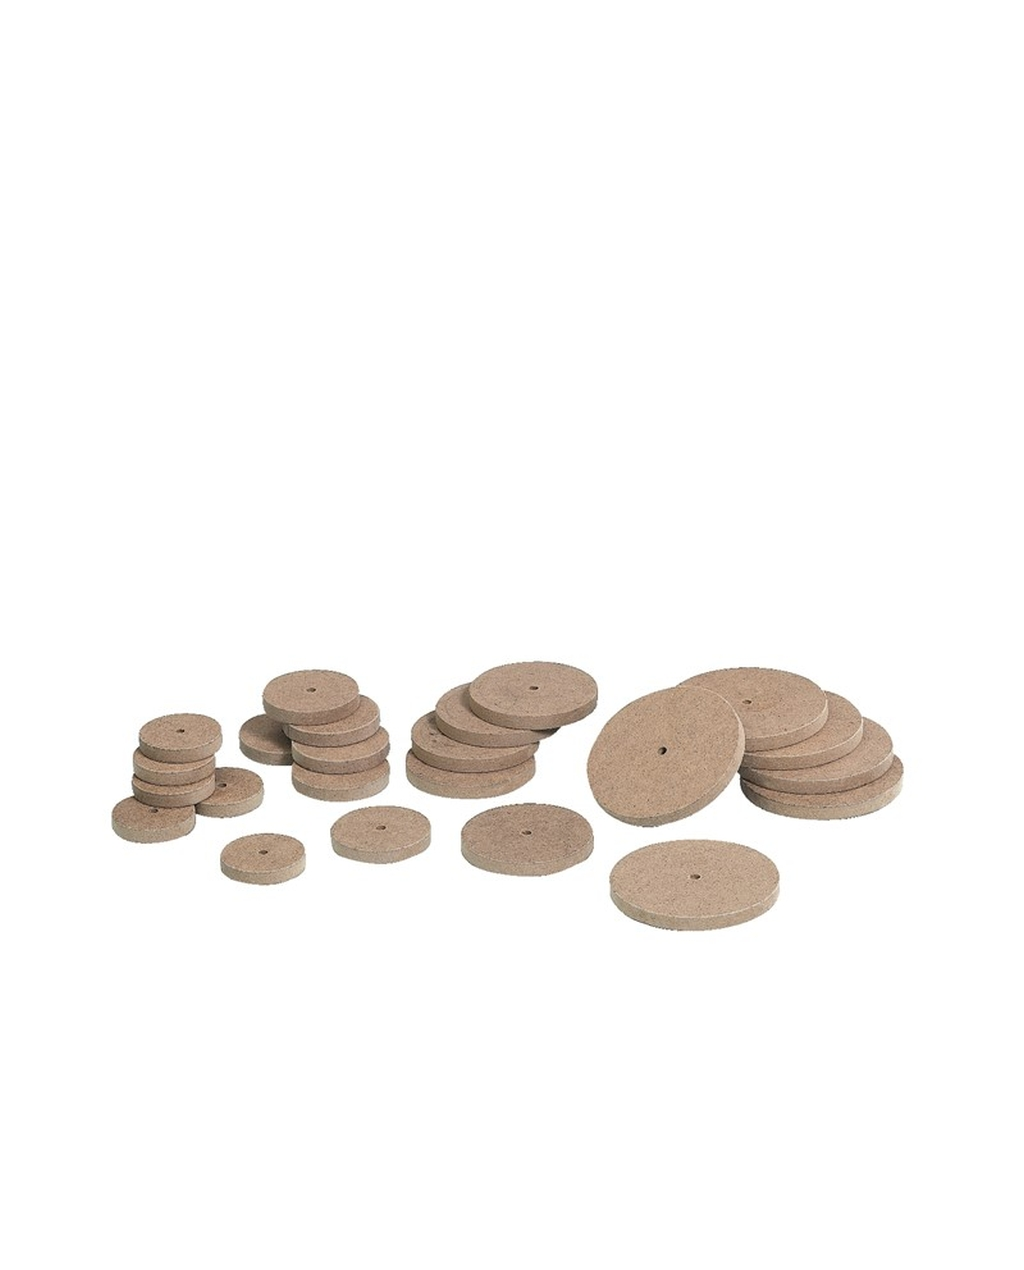 40mm MDF Board Wheels